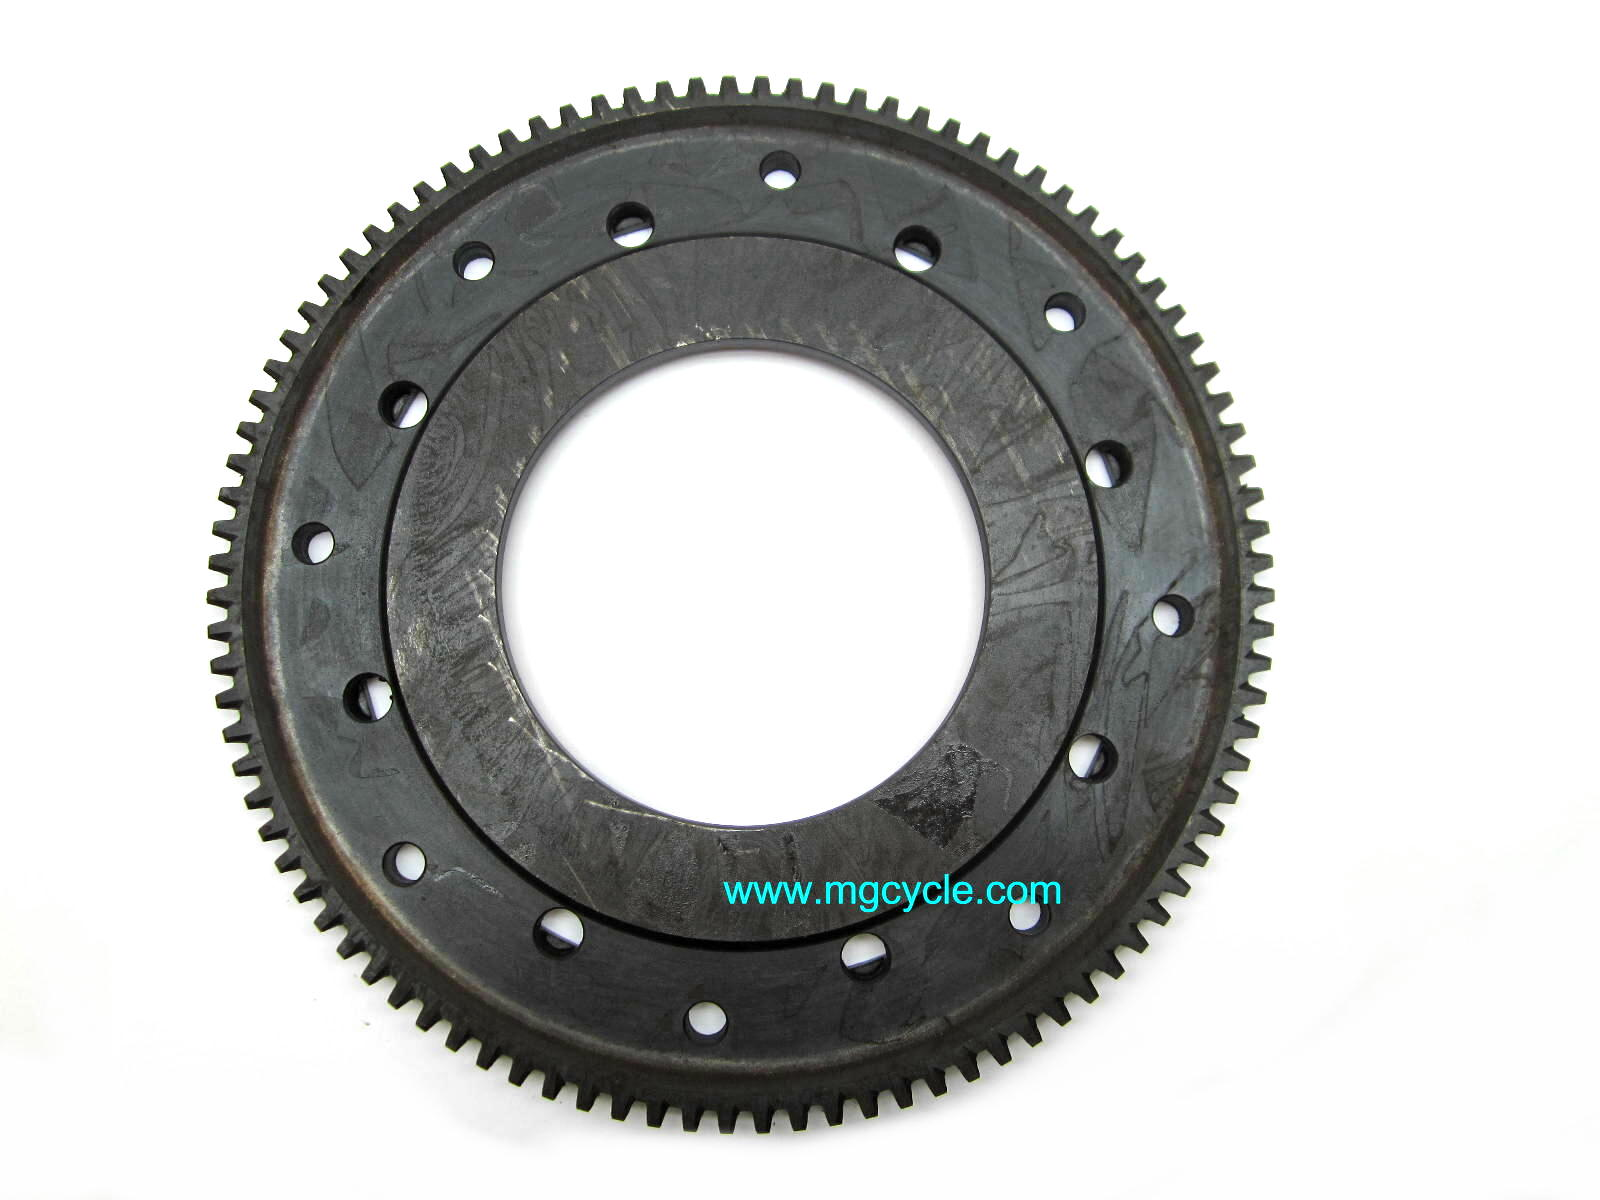 starter ring gear, flywheel ring gear, many models 1967 - 2012